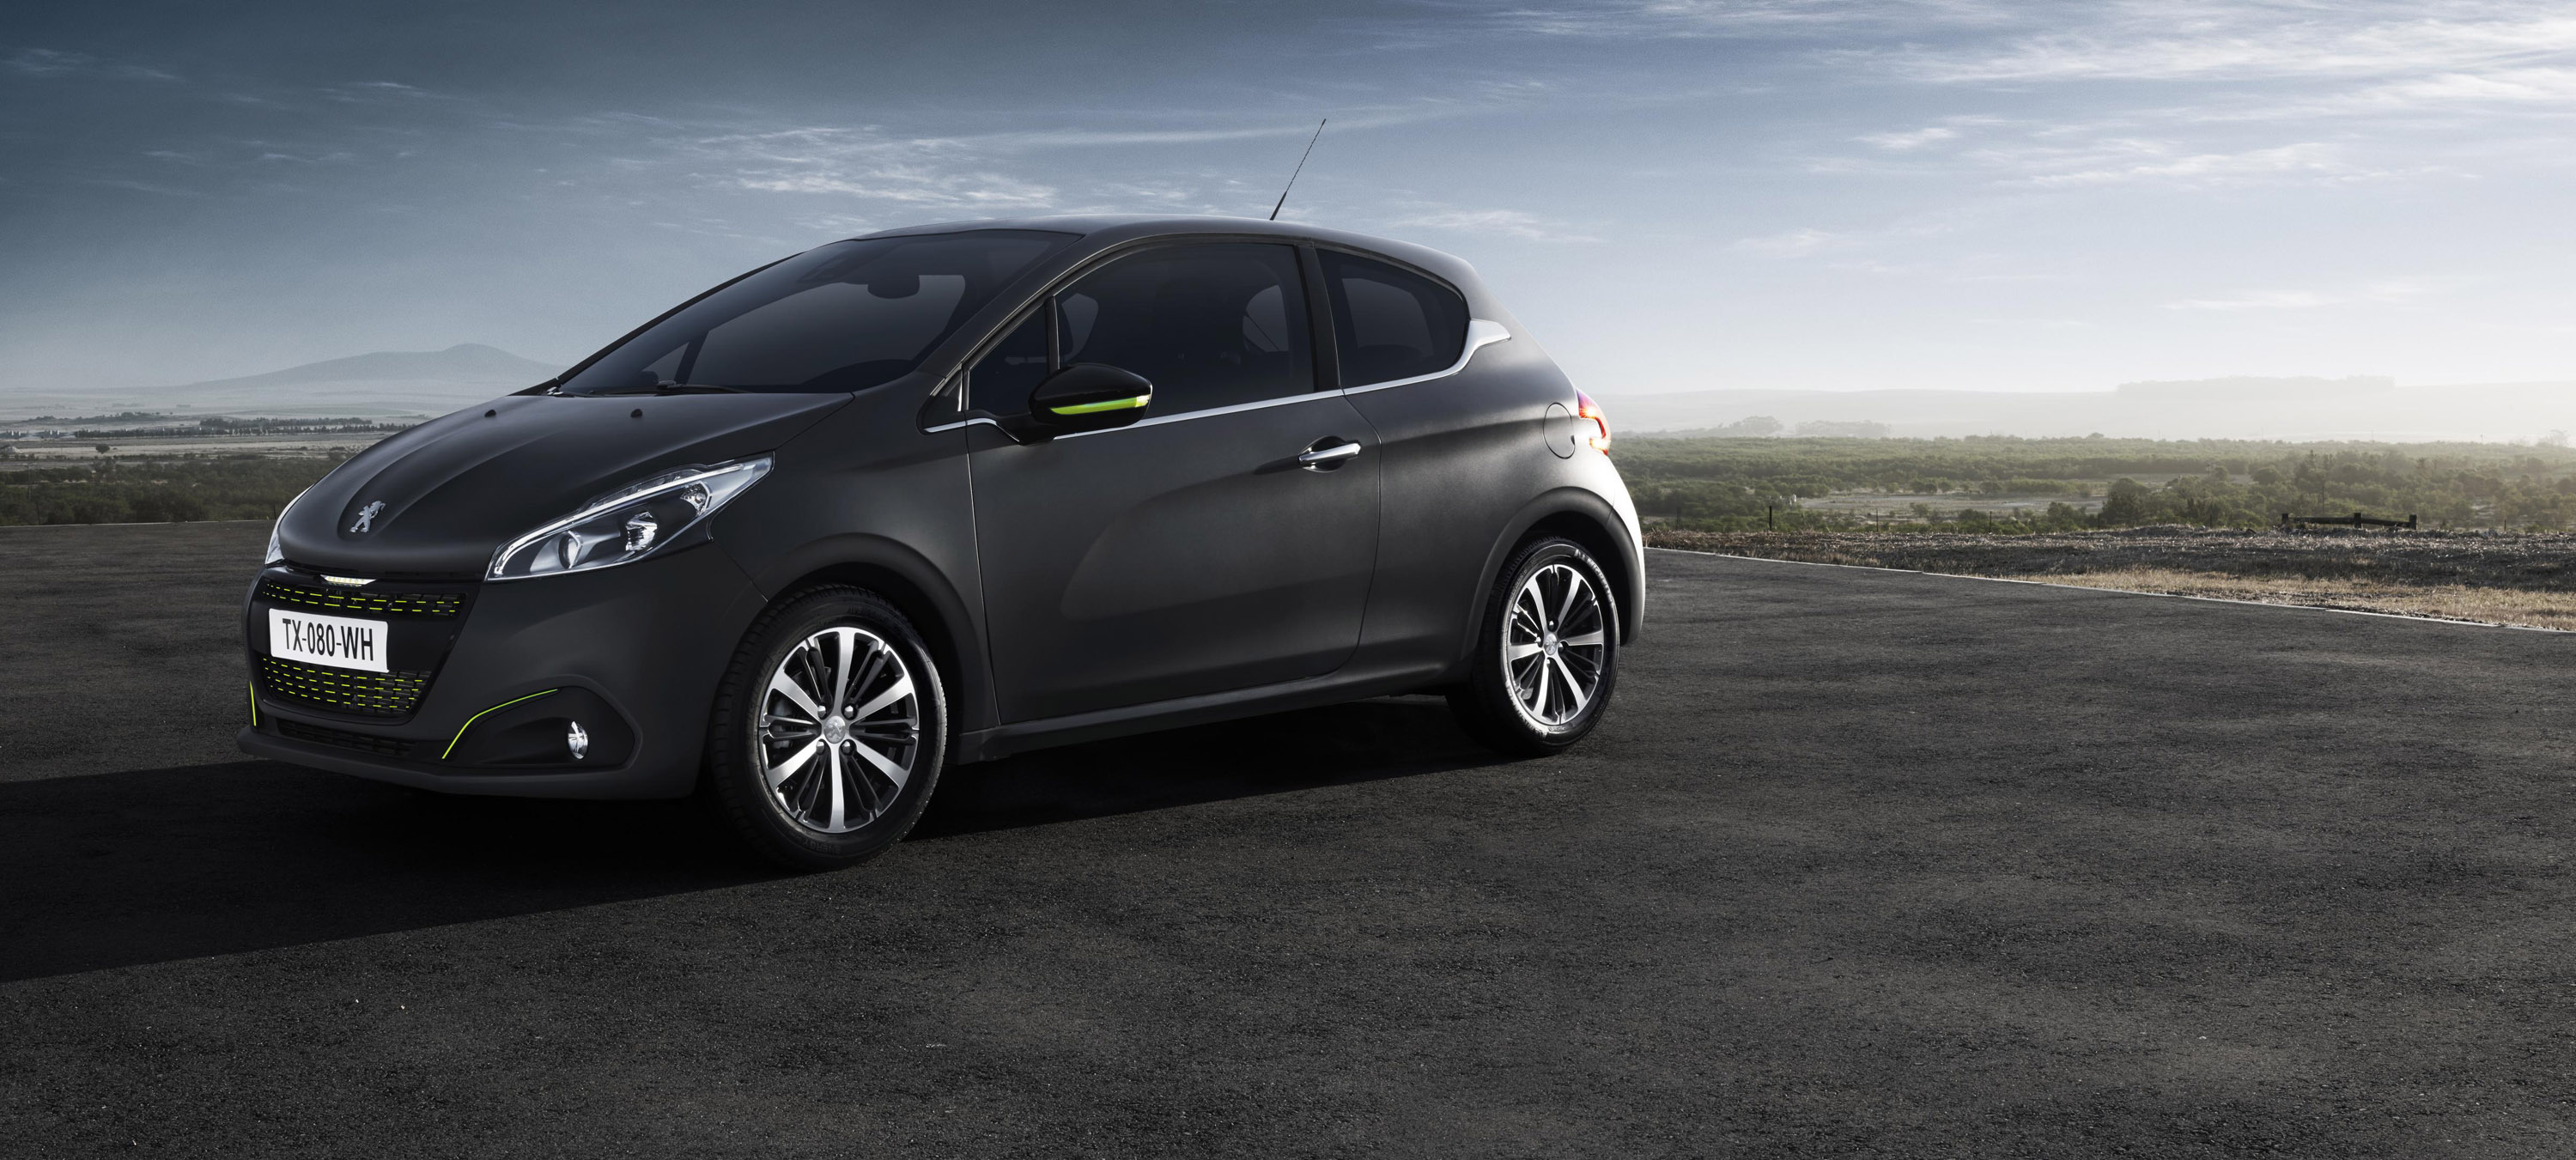 Pearlescent Car Paint >> 2015 Peugeot 208 Ice Silver and Ice Grey